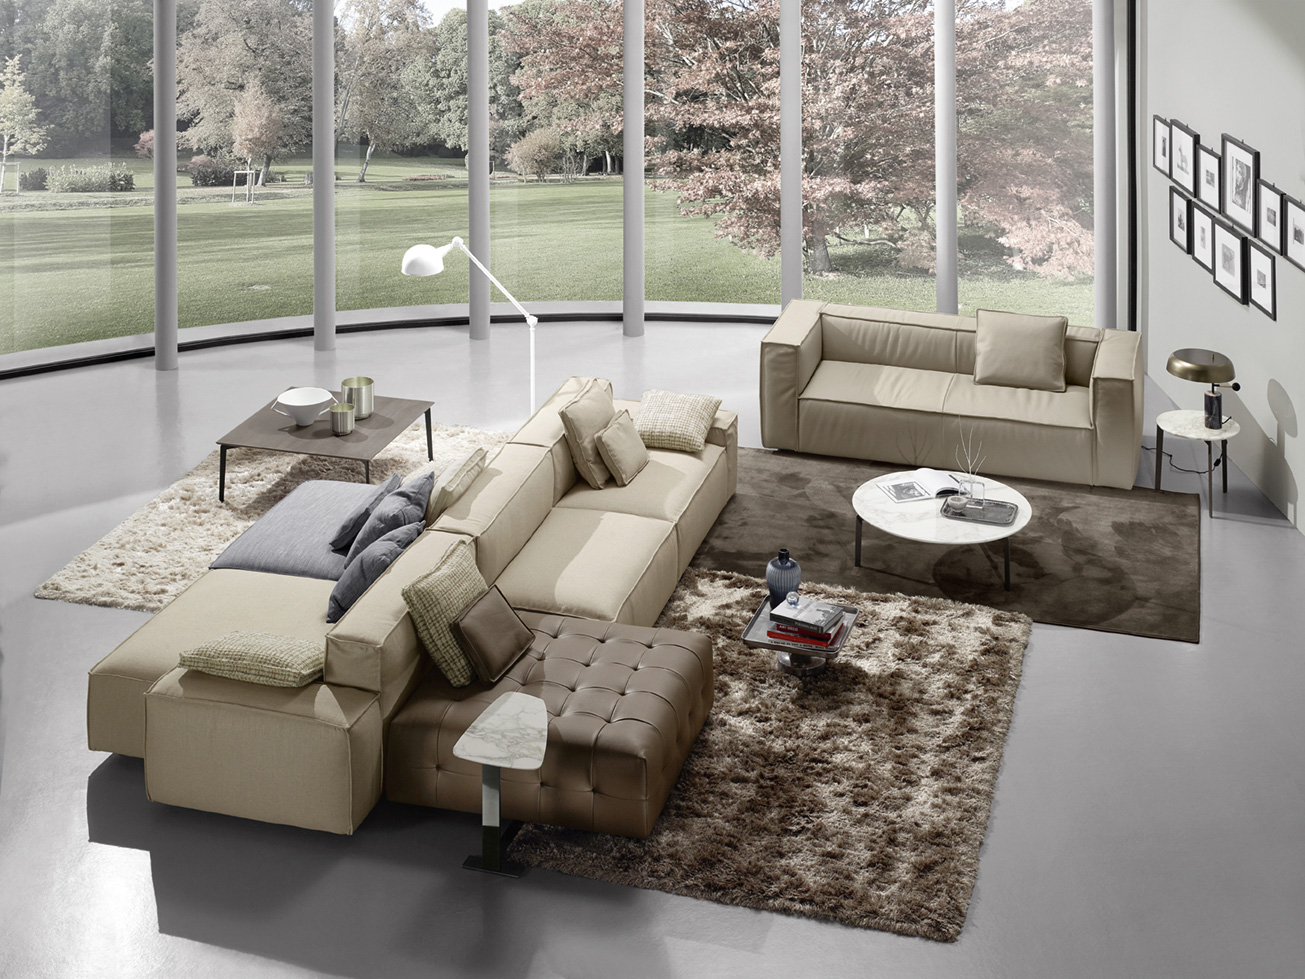 double side colorful leather sofa, brown beige blue sofa that can be adjustable to all textures and colors, beige leather sofa 3-seater, marble circular table, marble side table, marmarino kentriko trapezaki,